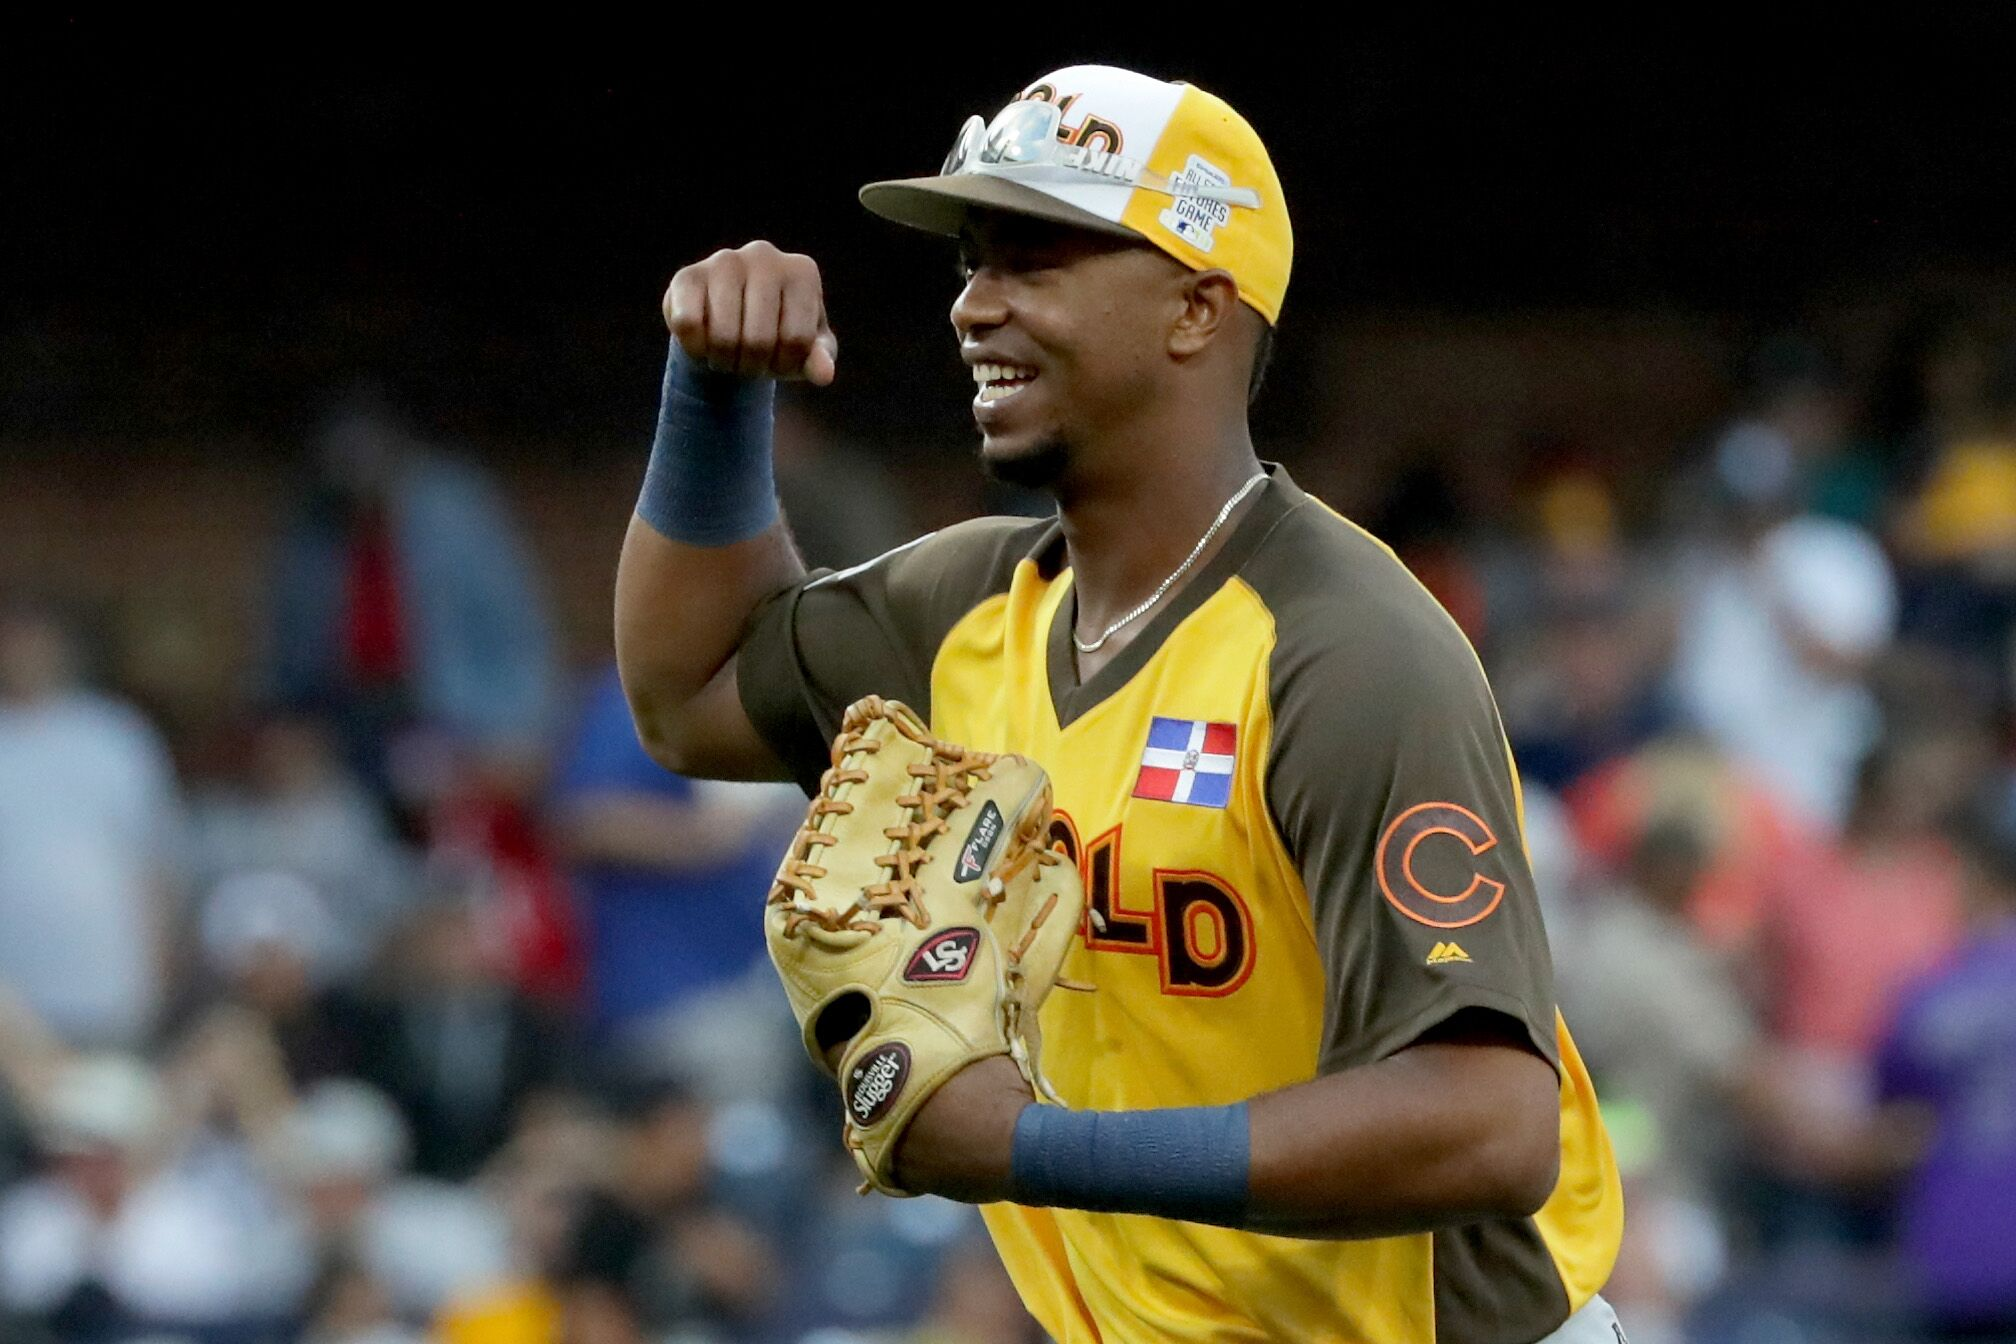 promo code 7b79e 31ea5 White Sox: Eloy Jimenez Could Possibly Spend 2018 Season in ...